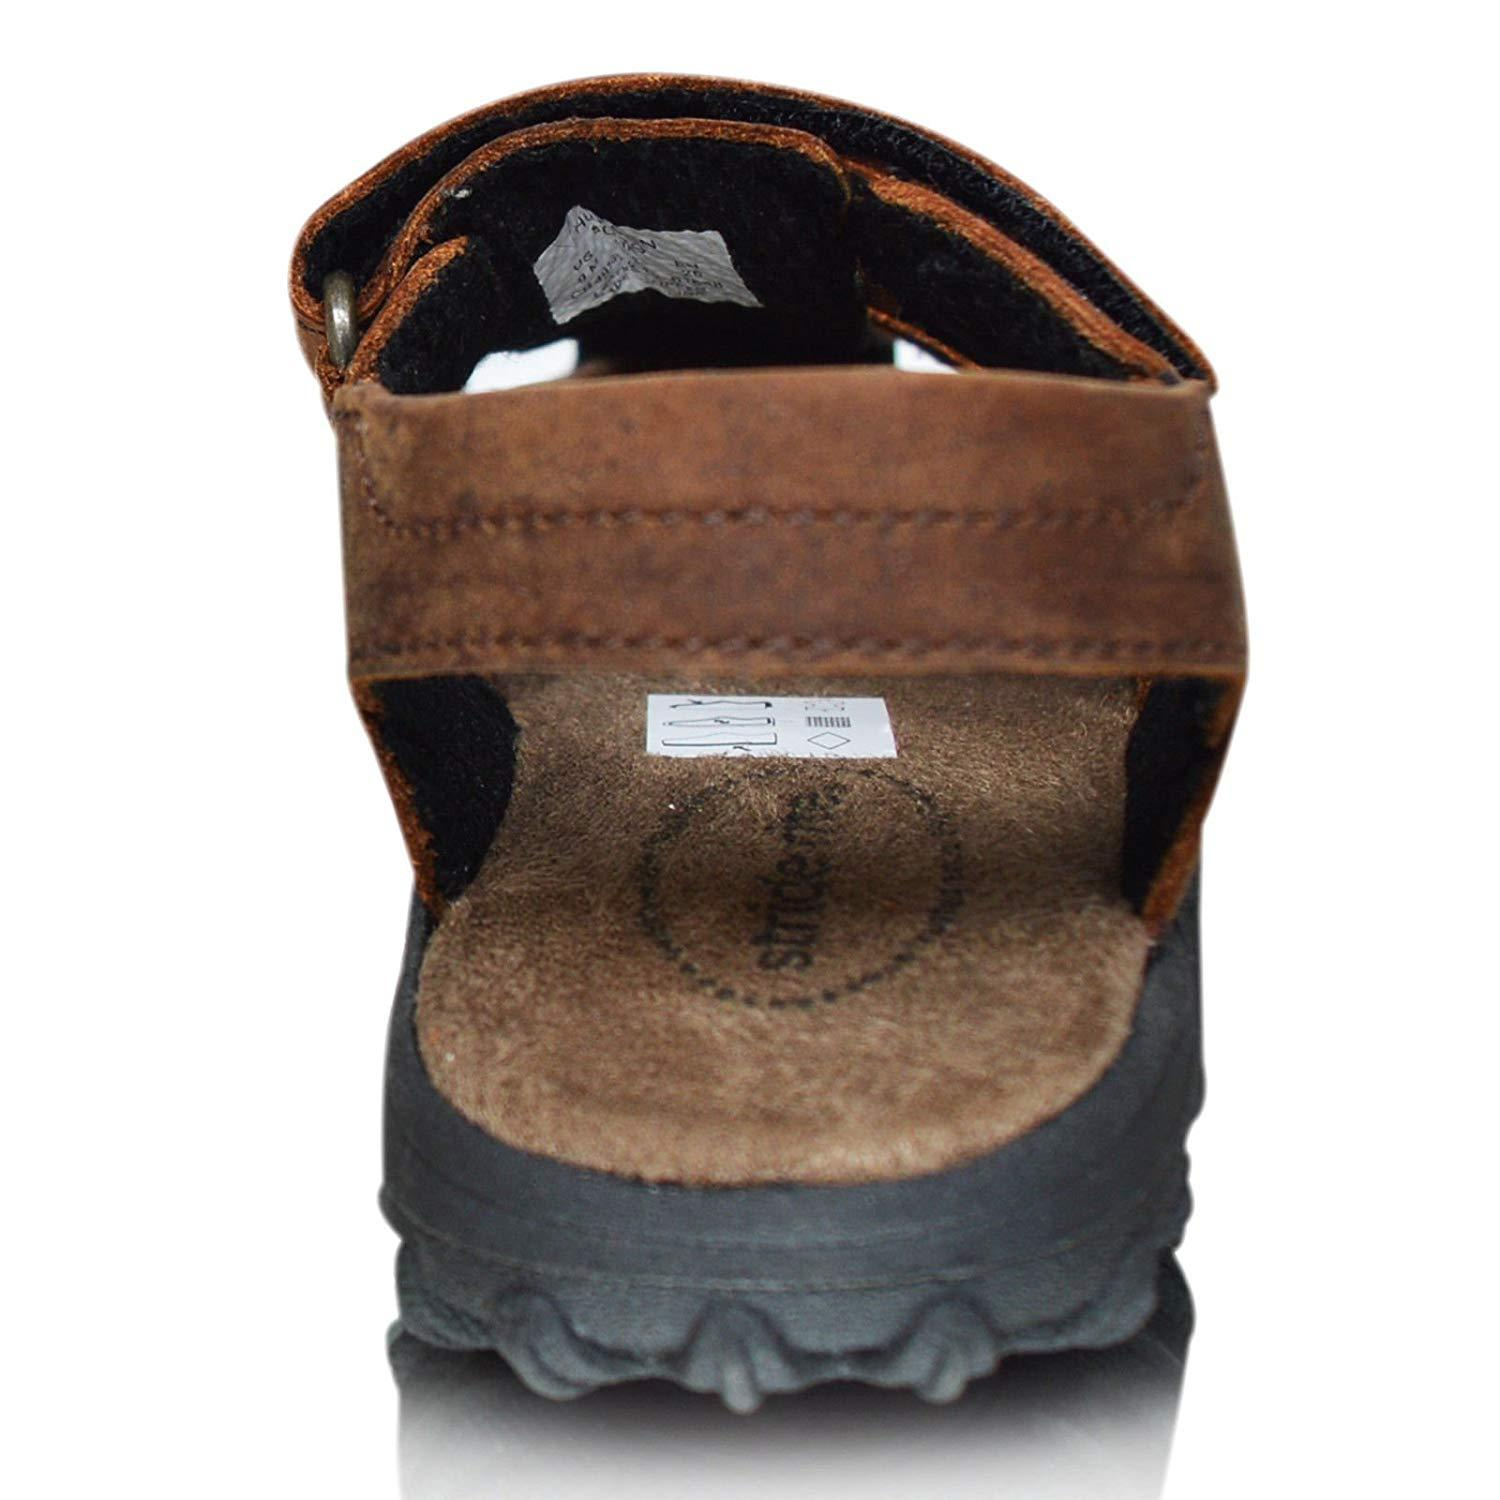 4a8fcee9403a8 Xelay Boys Leather Brown Fisherman Sports Summer Sandals Size Toddlers Child  UK 7 8 9 10 11 12 13